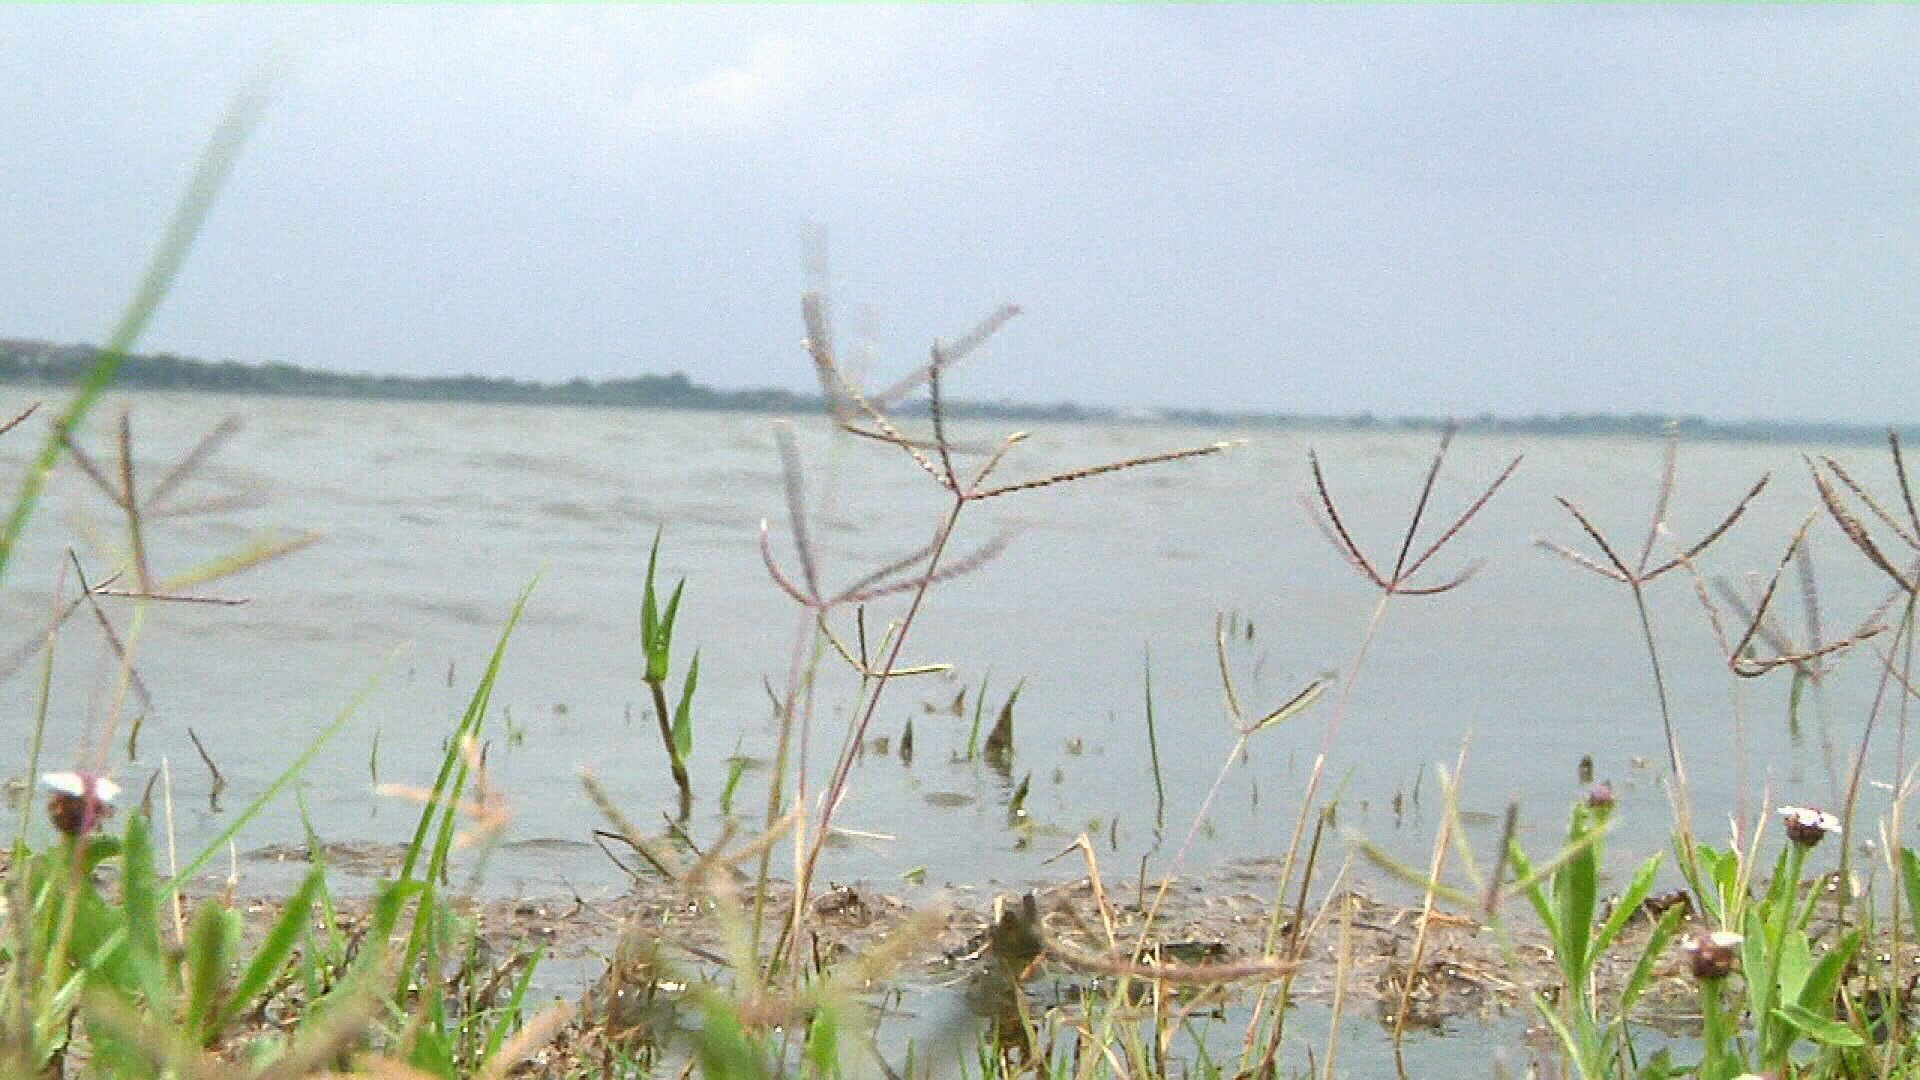 Oil-rich land near city's drinking water supply no longer listed for auction by a federal agency (KRIS 6 News)